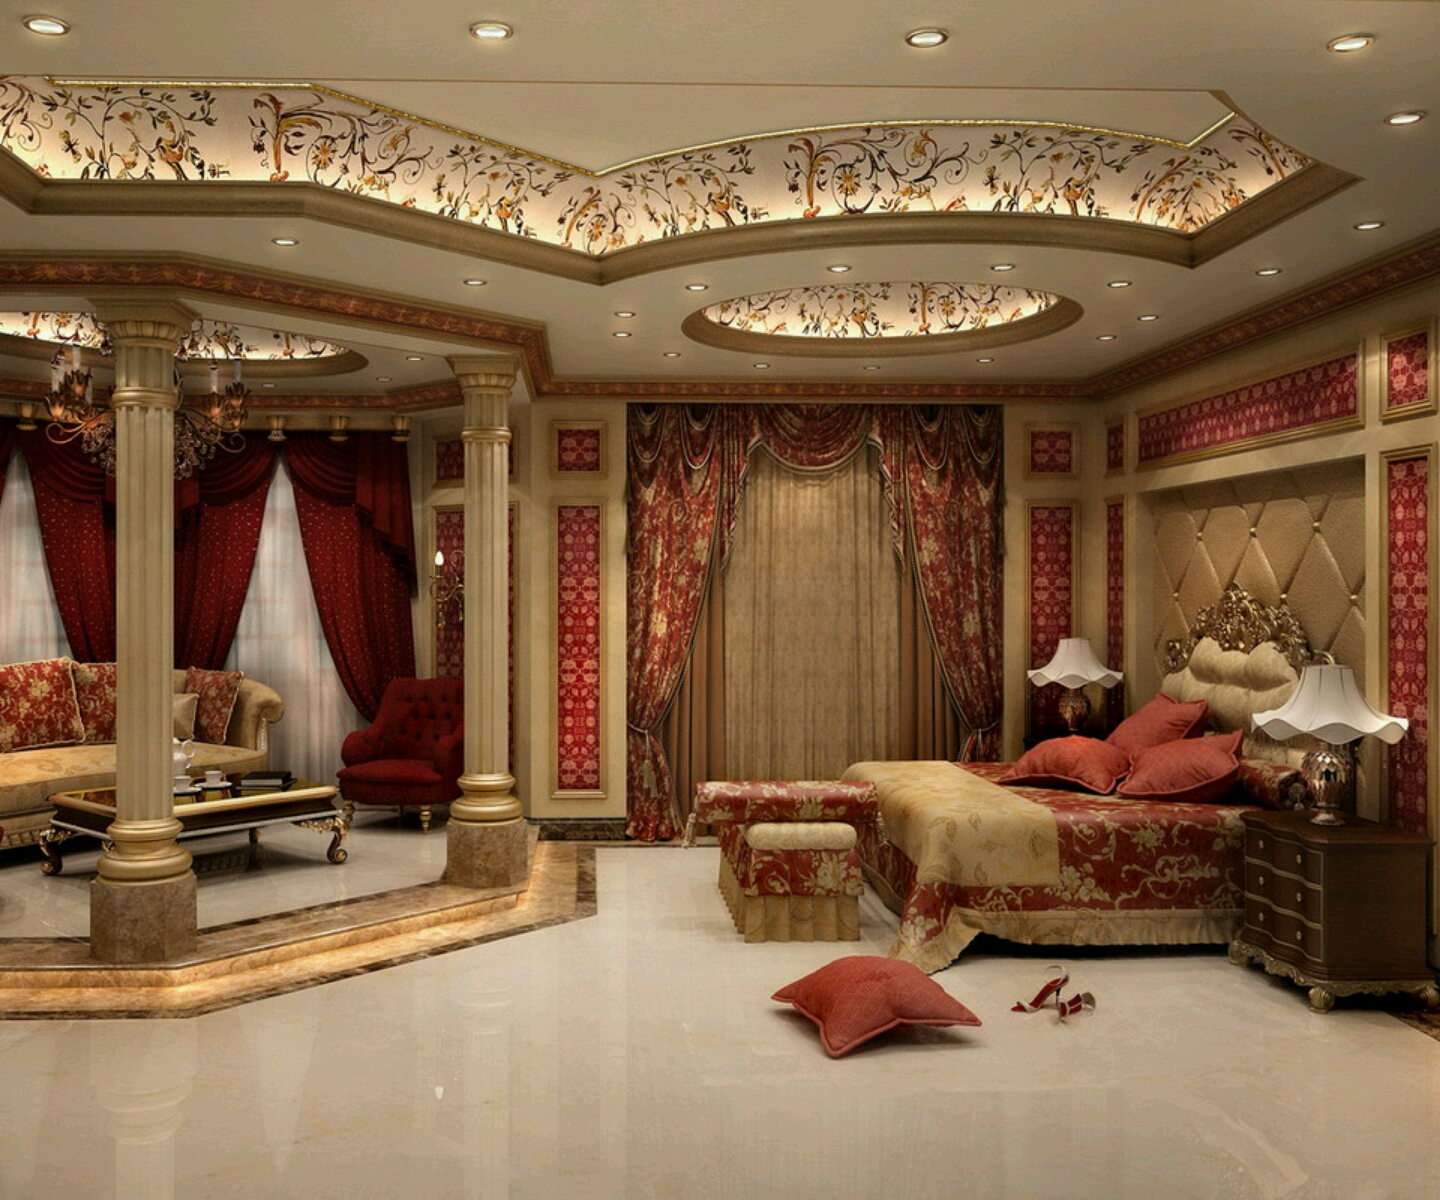 Bedroom Ceiling Design Ideas-1.bp.blogspot.com